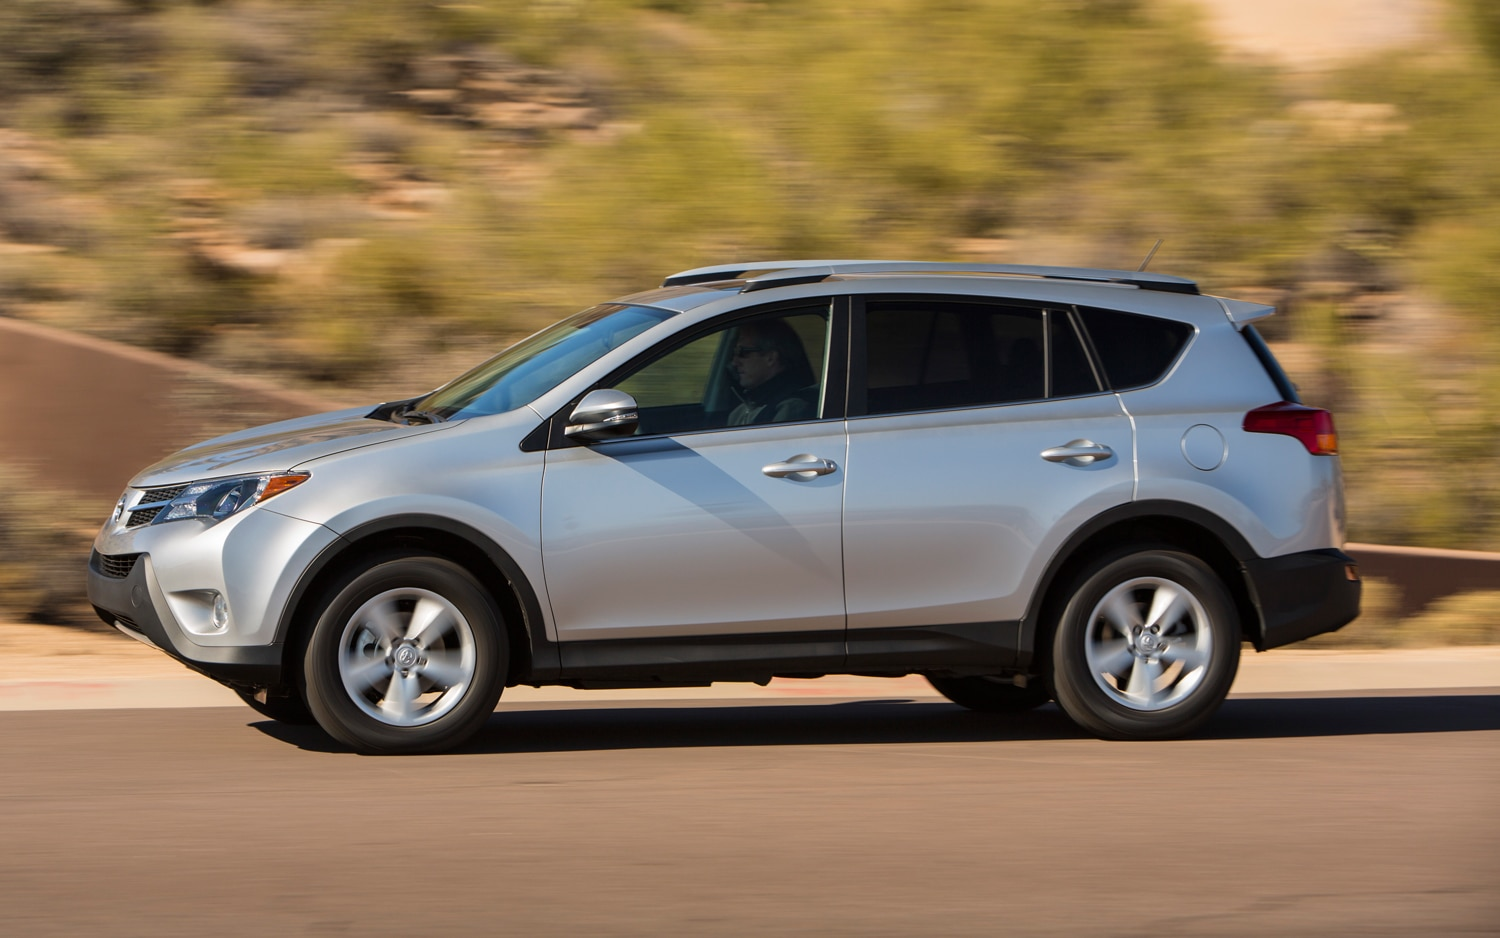 2013 Toyota RAV4 XLE Side View 05